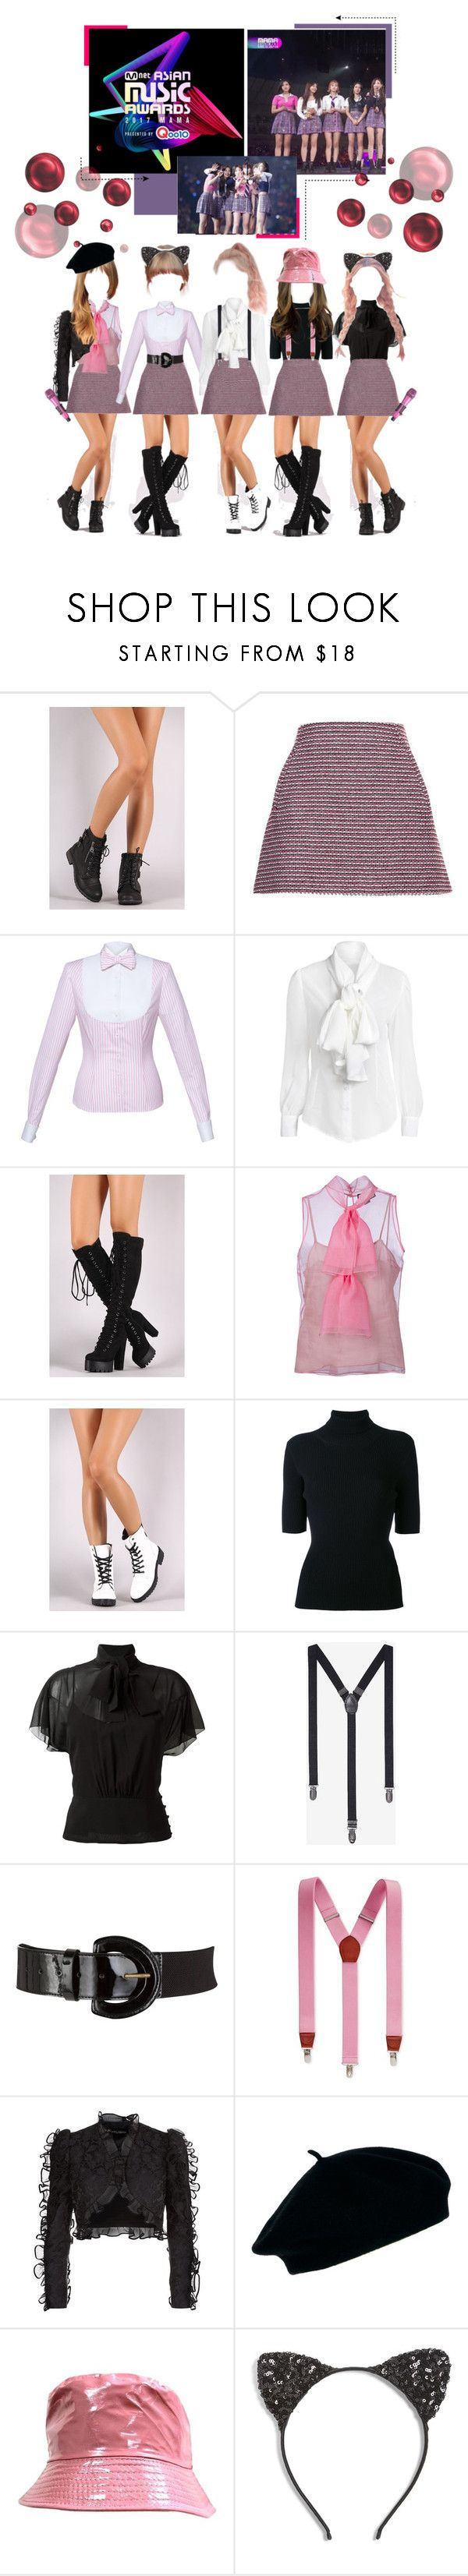 """«CANDY - MAMAs COLLAB STAGE»"" by cw-entertainment ❤ liked on Polyvore featuring Thakoon, Lena Hoschek, Gucci, Qupid, Valentino, RED Valentino, Express, John Lewis, Club Room and Dolce&Gabbana"